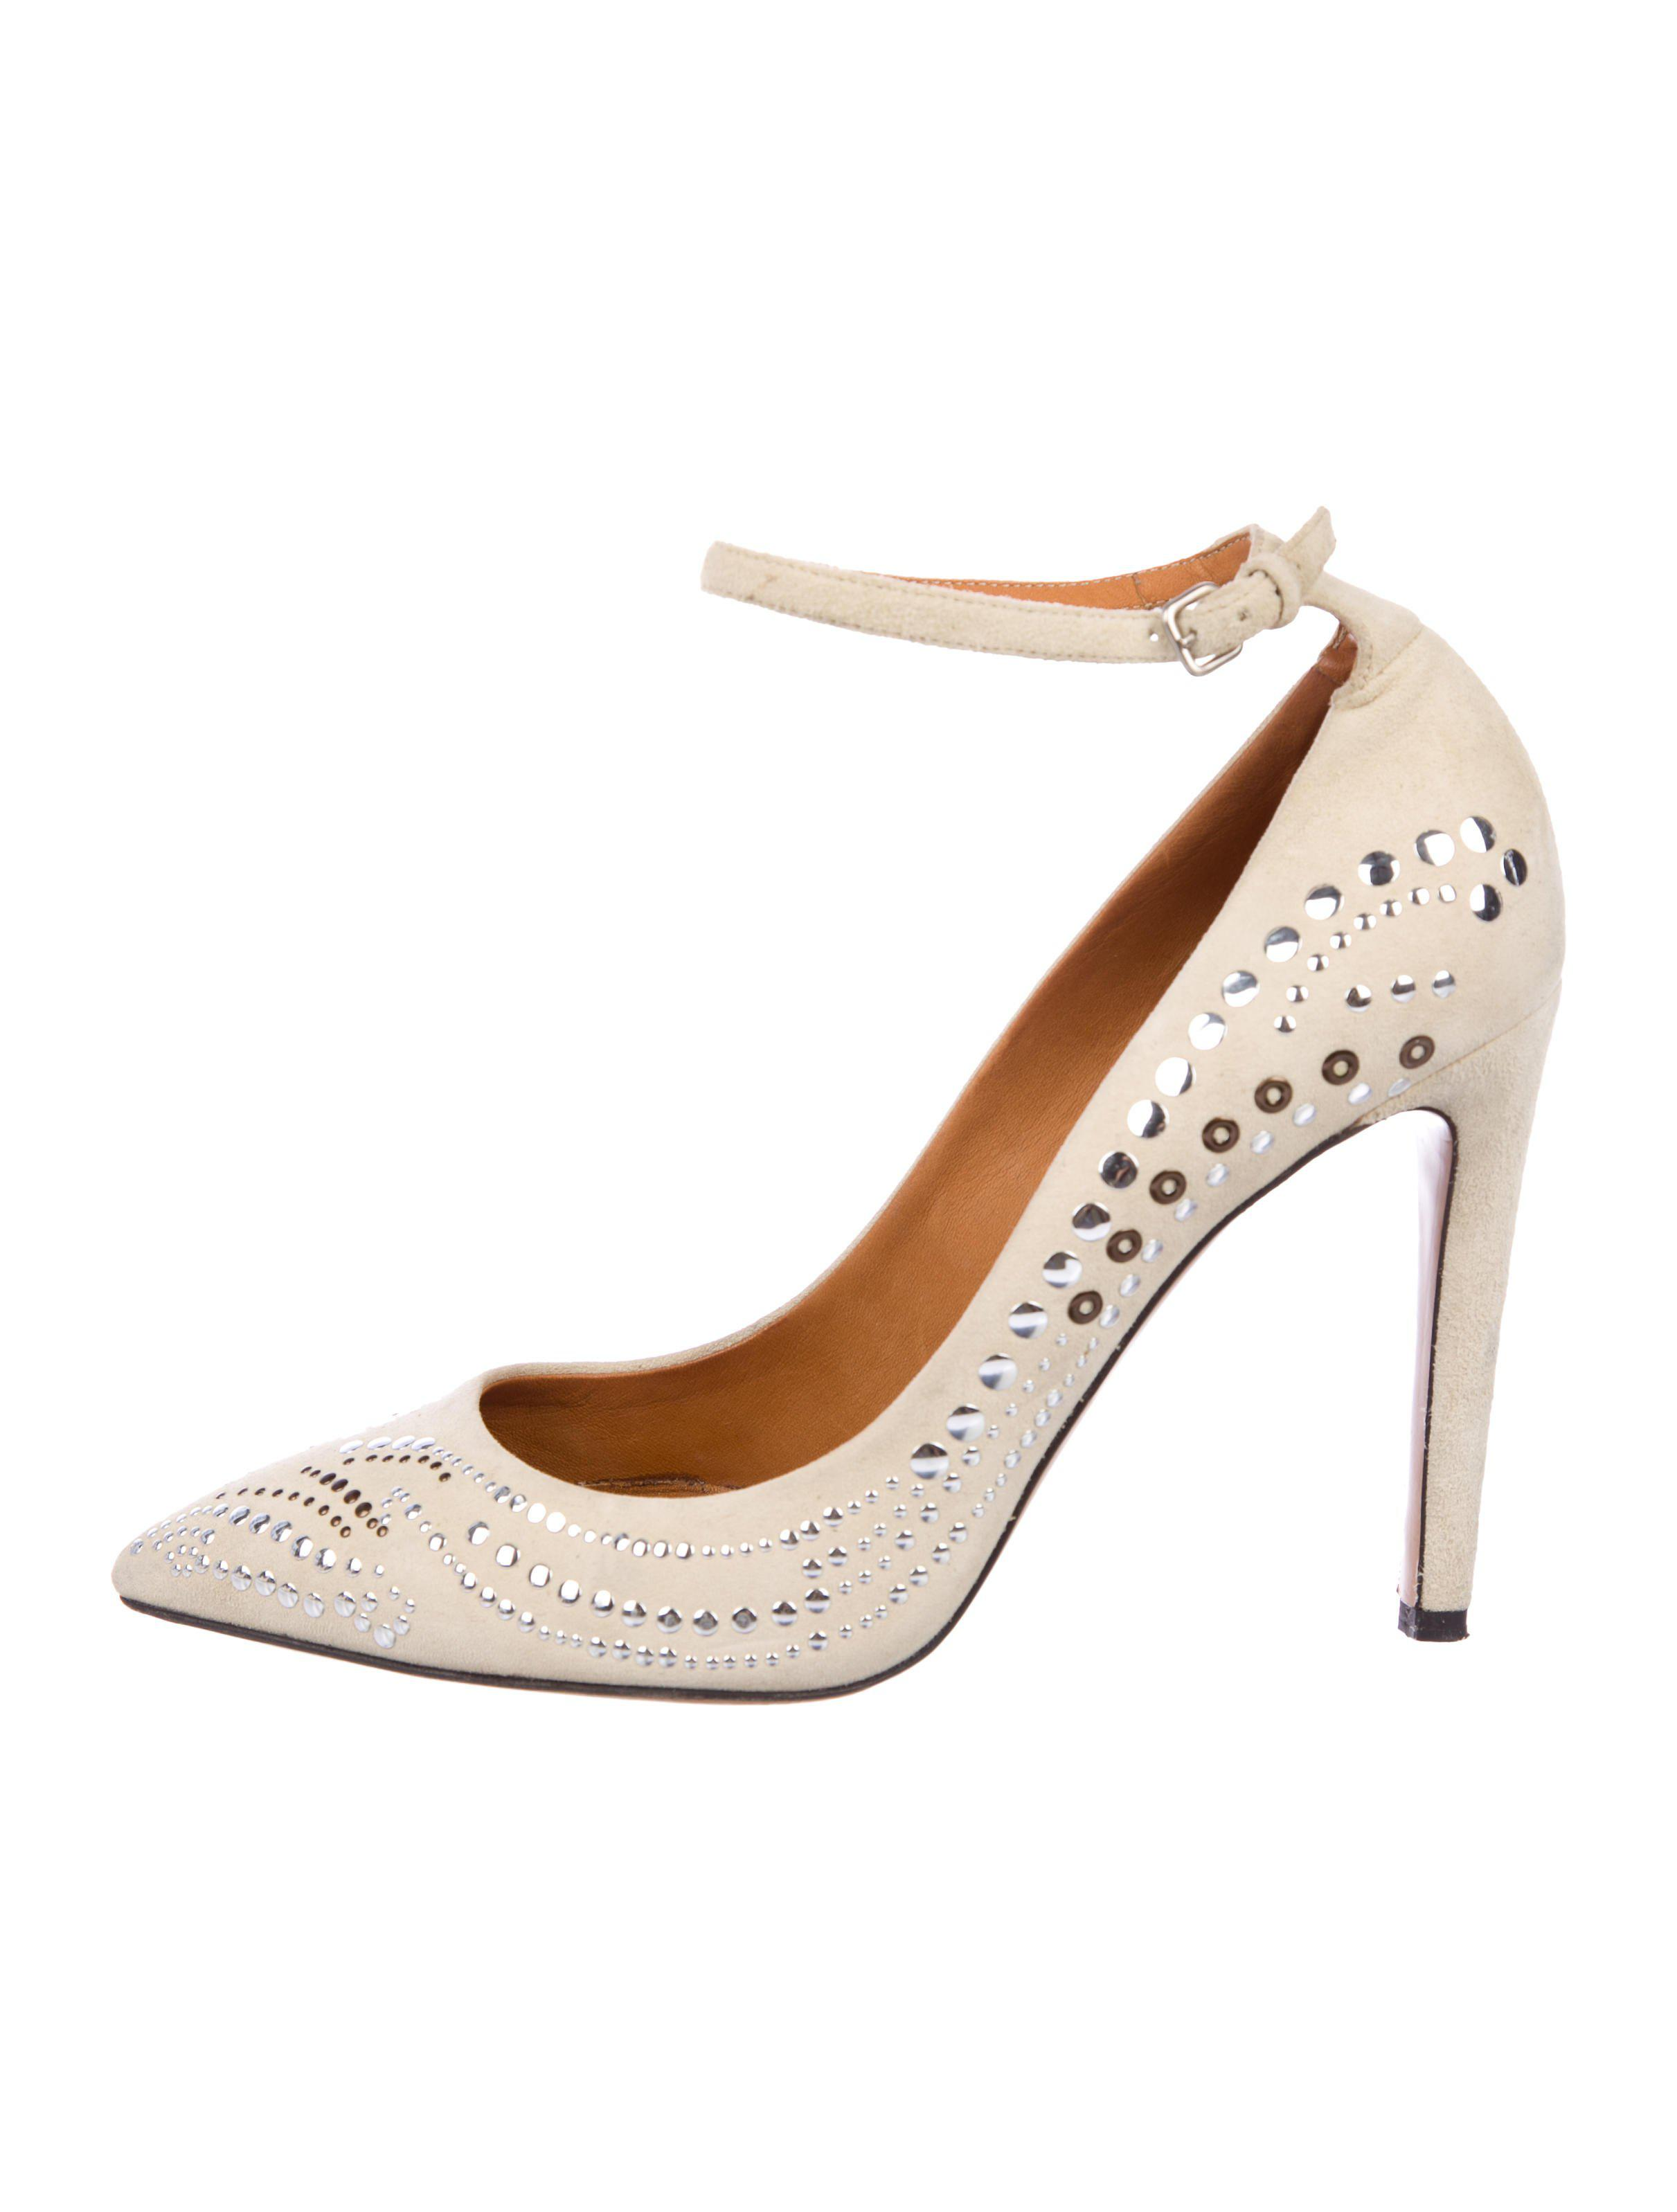 outlet pictures Isabel Marant Suede Embellished Pumps countdown package for sale explore cheap online free shipping new cheap sale Inexpensive 5NIbR